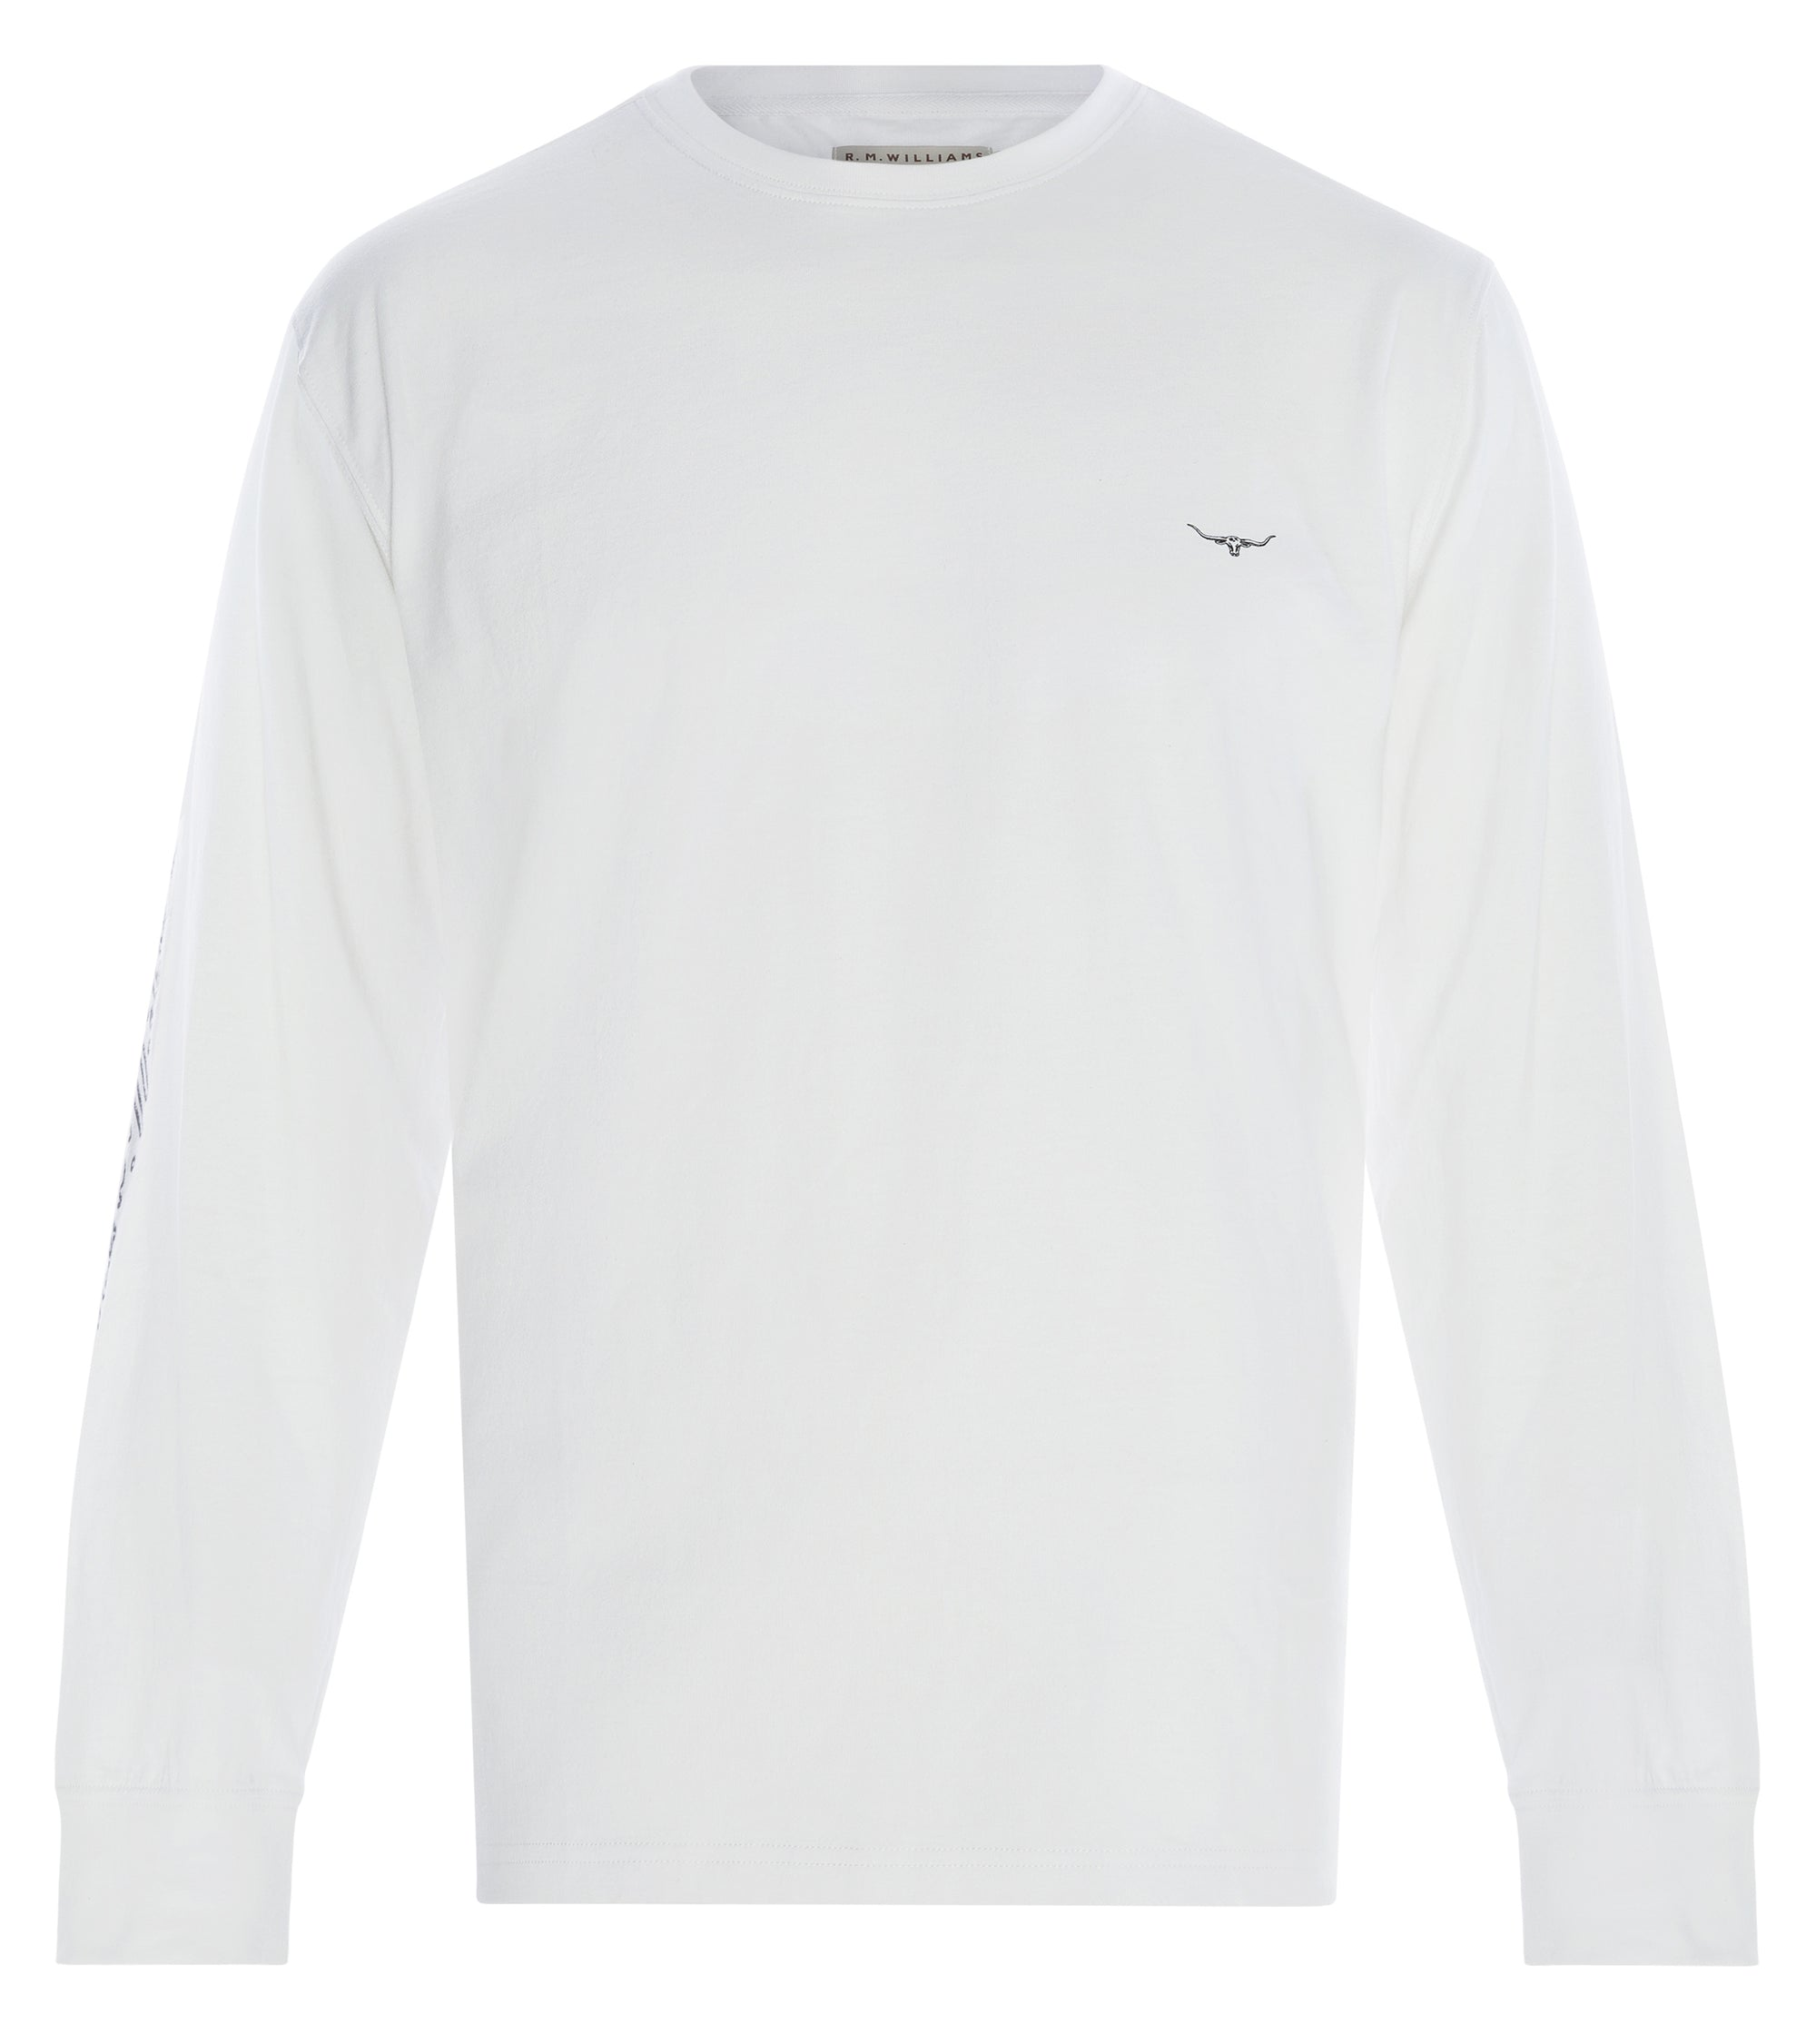 RM Williams Signature Long Sleeve T-Shirt